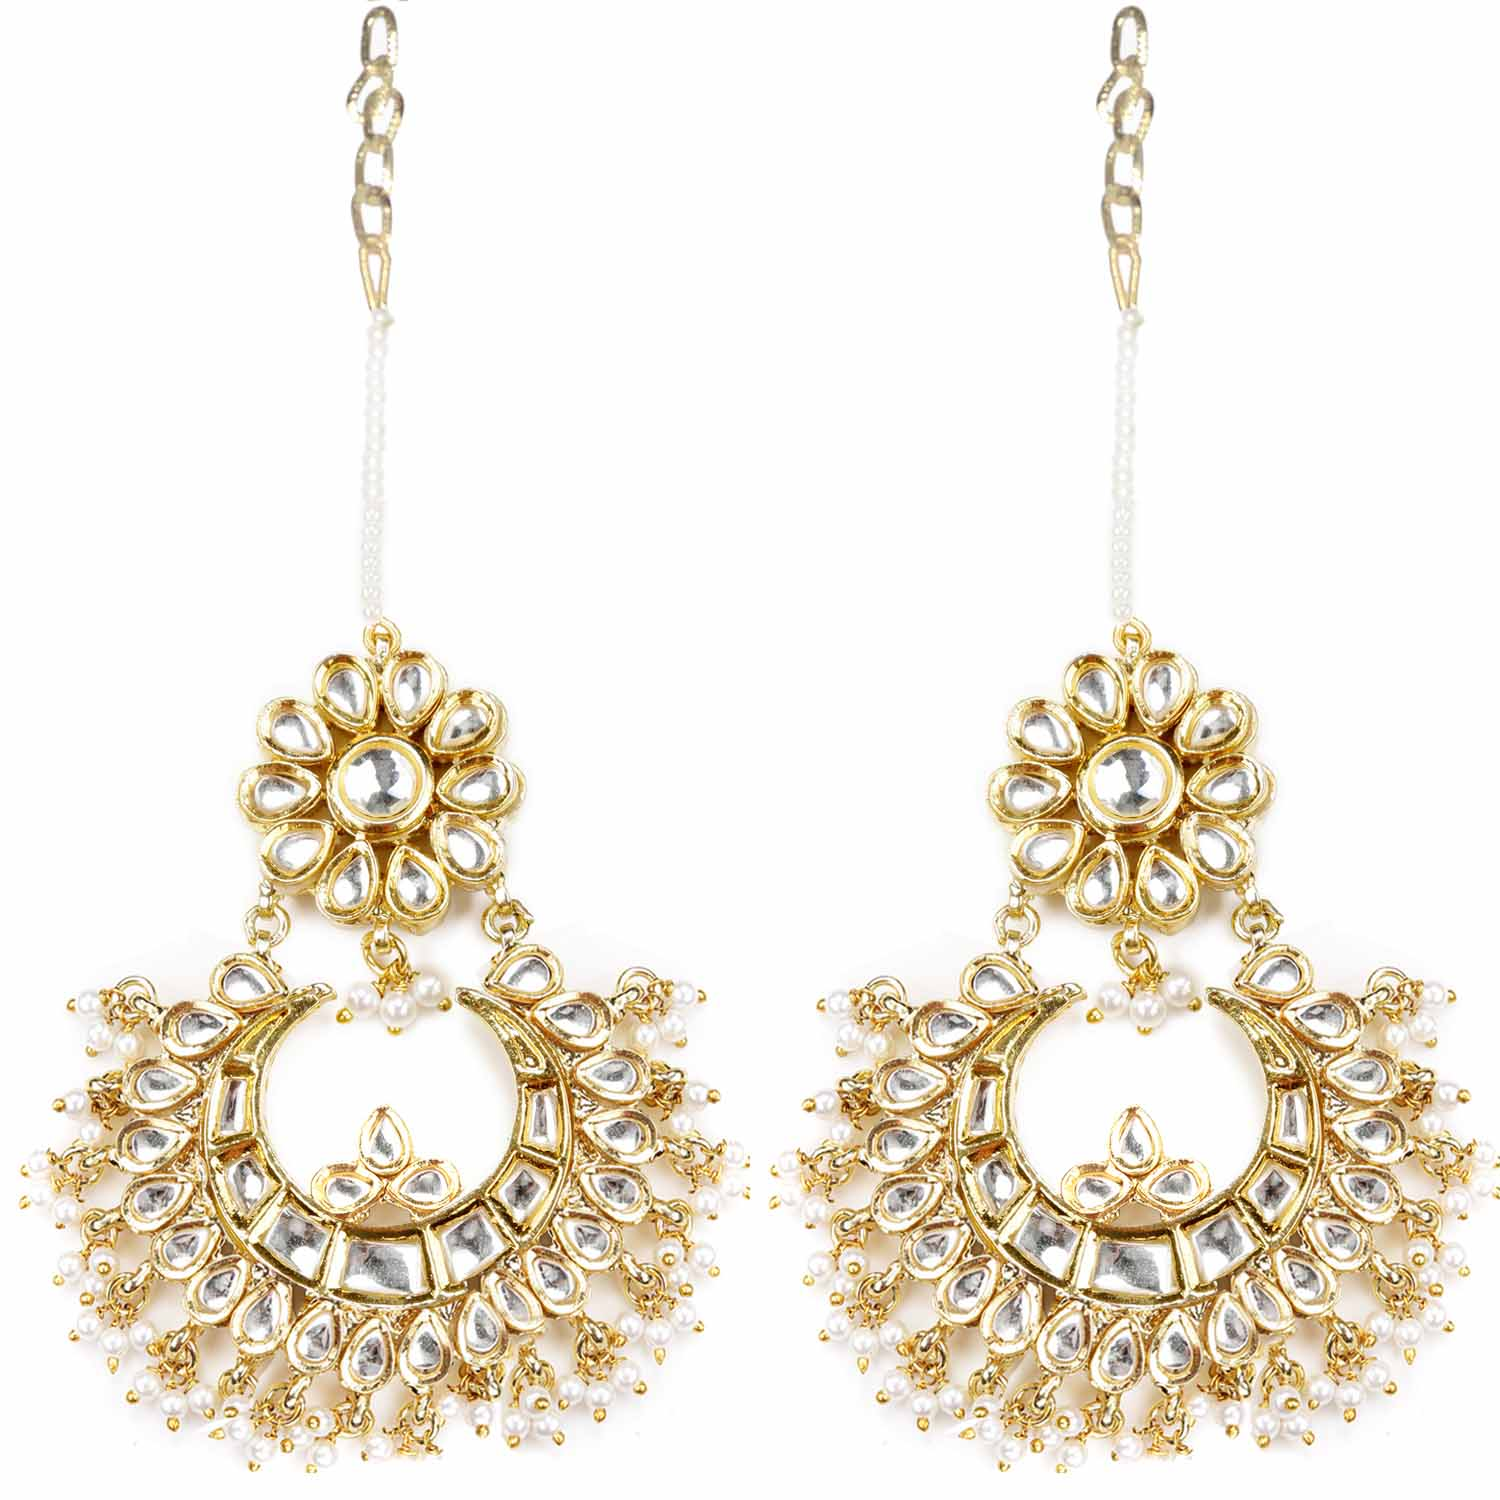 Chandelier Earrings with White Beads and Clear Crystals